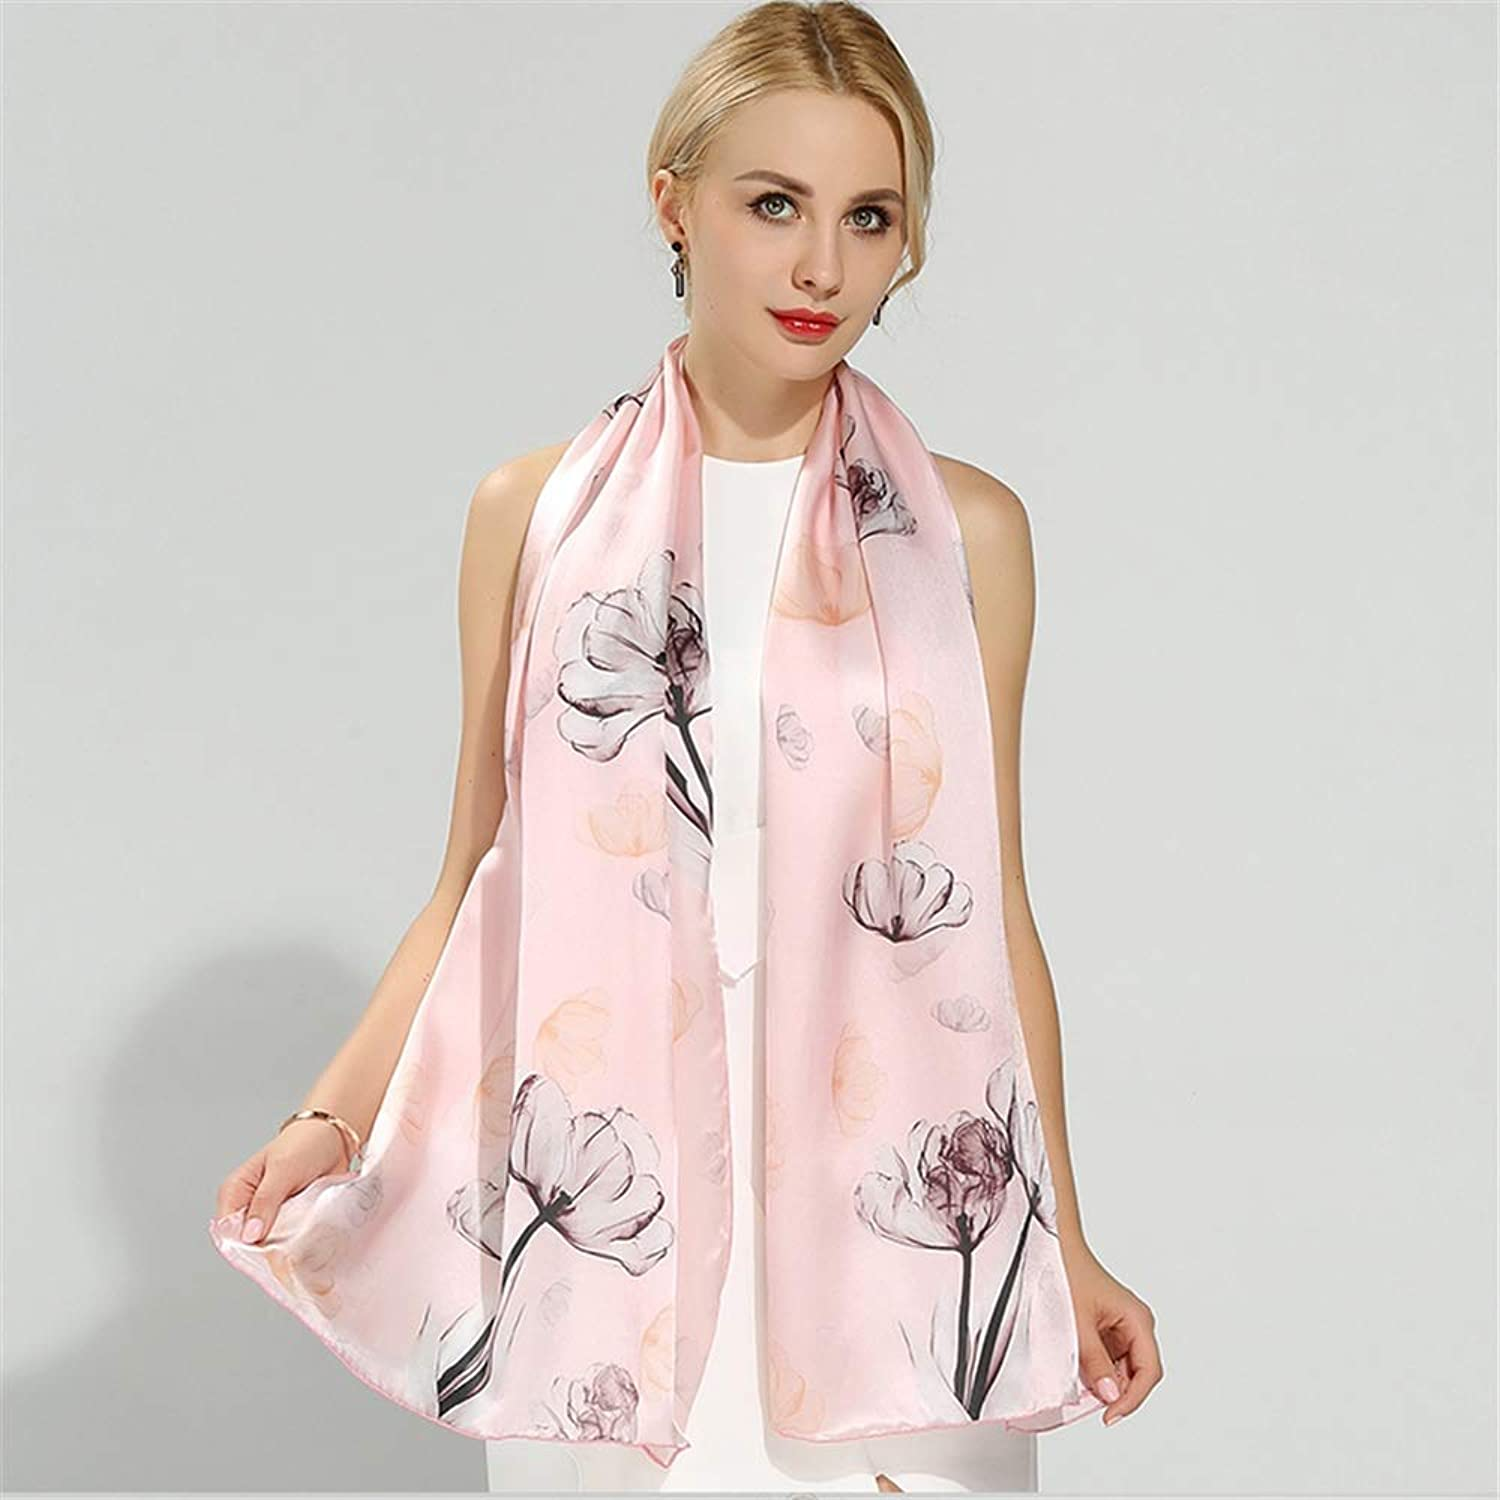 Women's Silk Scarf Printed Silk Long Silk Scarf for Party Wedding Dating, 20  74 Inch (color   Natural)